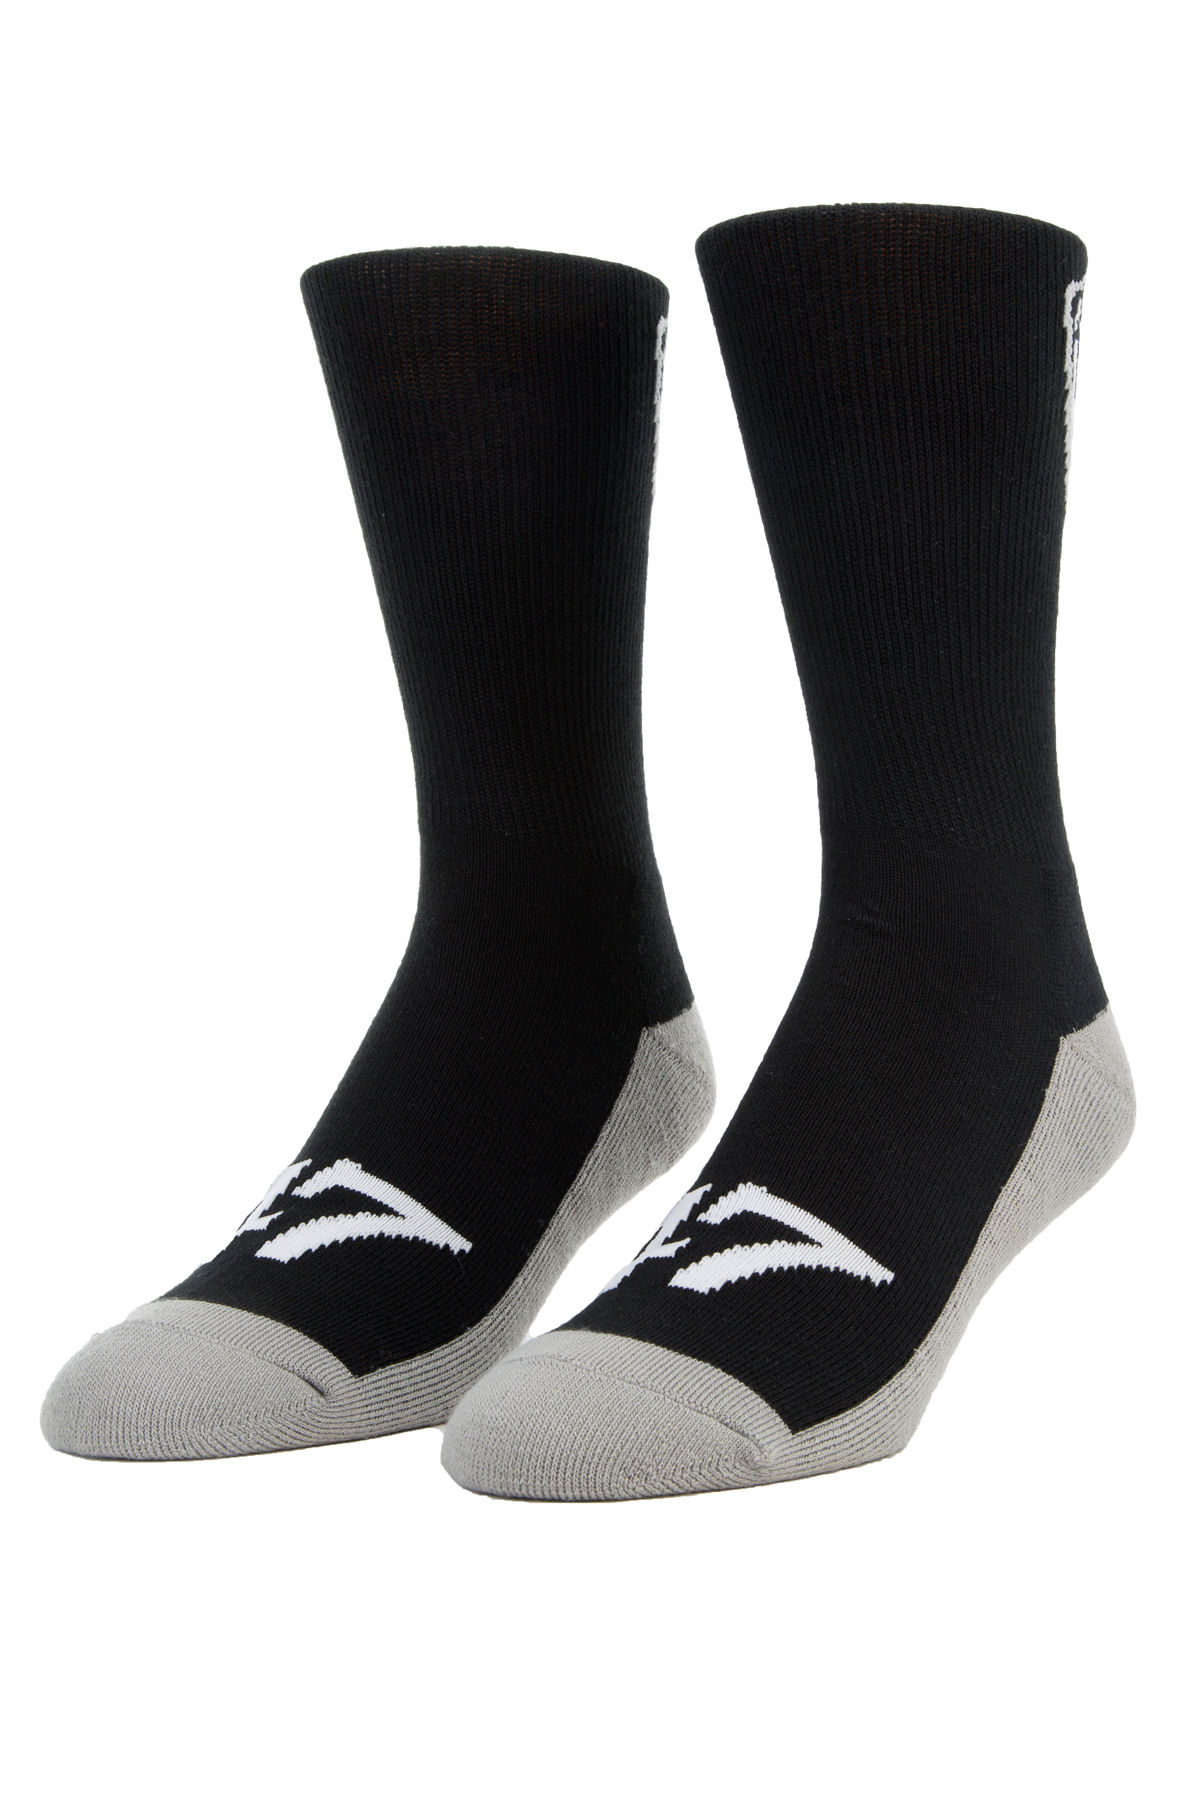 Image of The LRG crest crew socks in black and grey